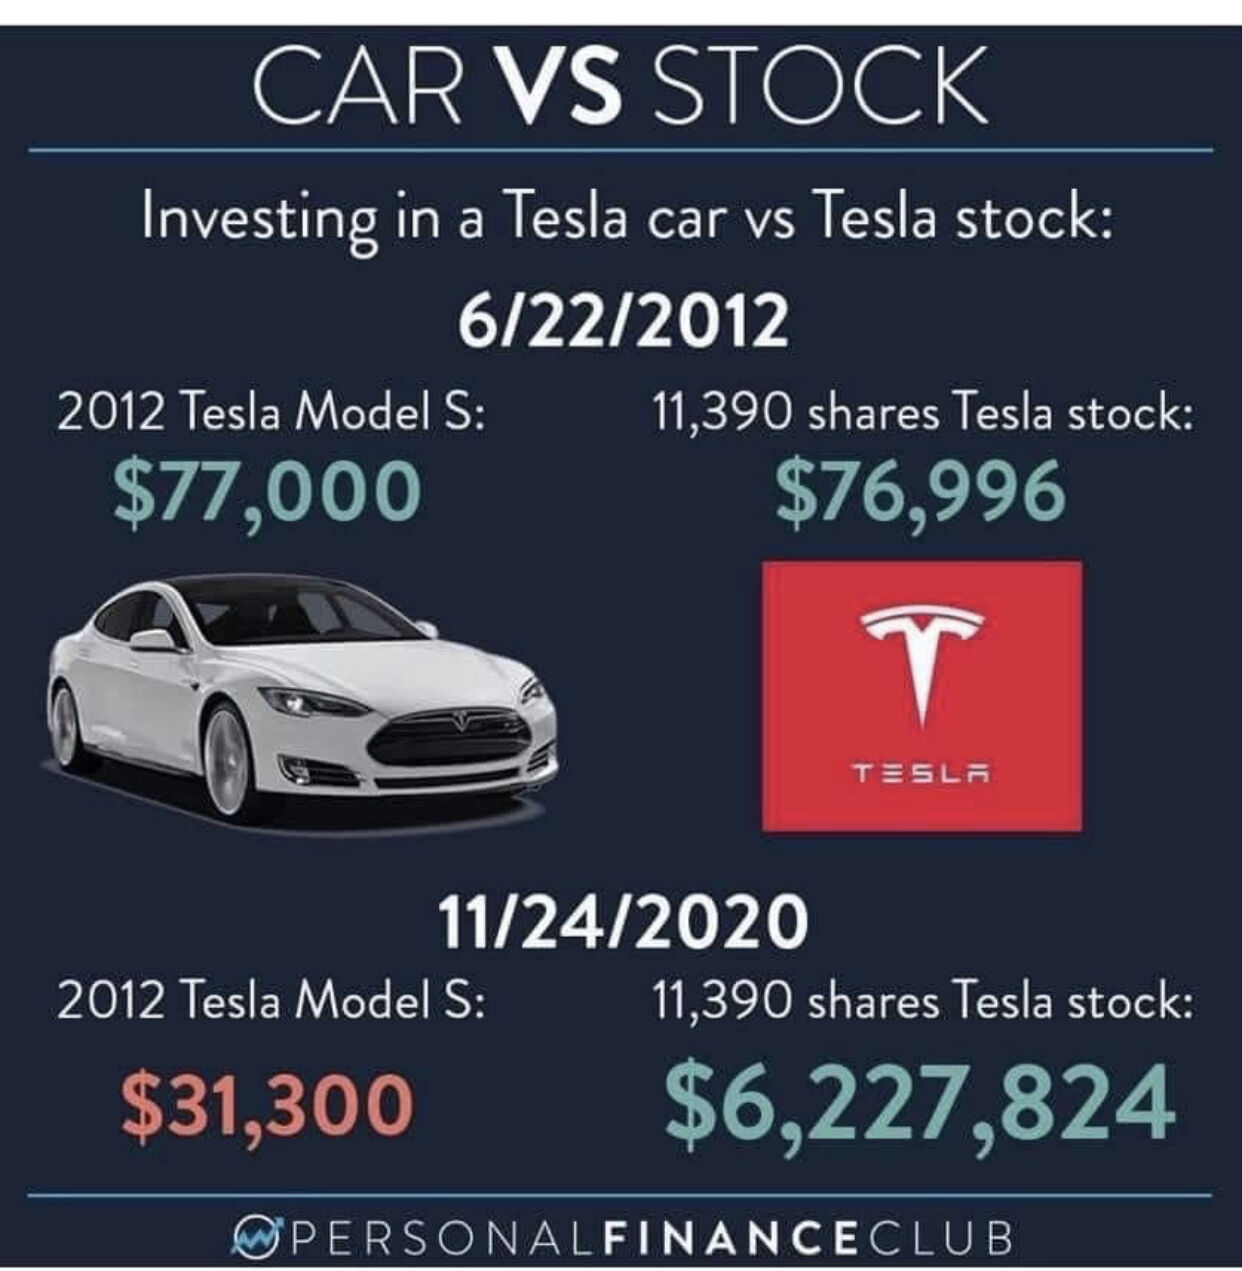 Tesla car price vs. stock price